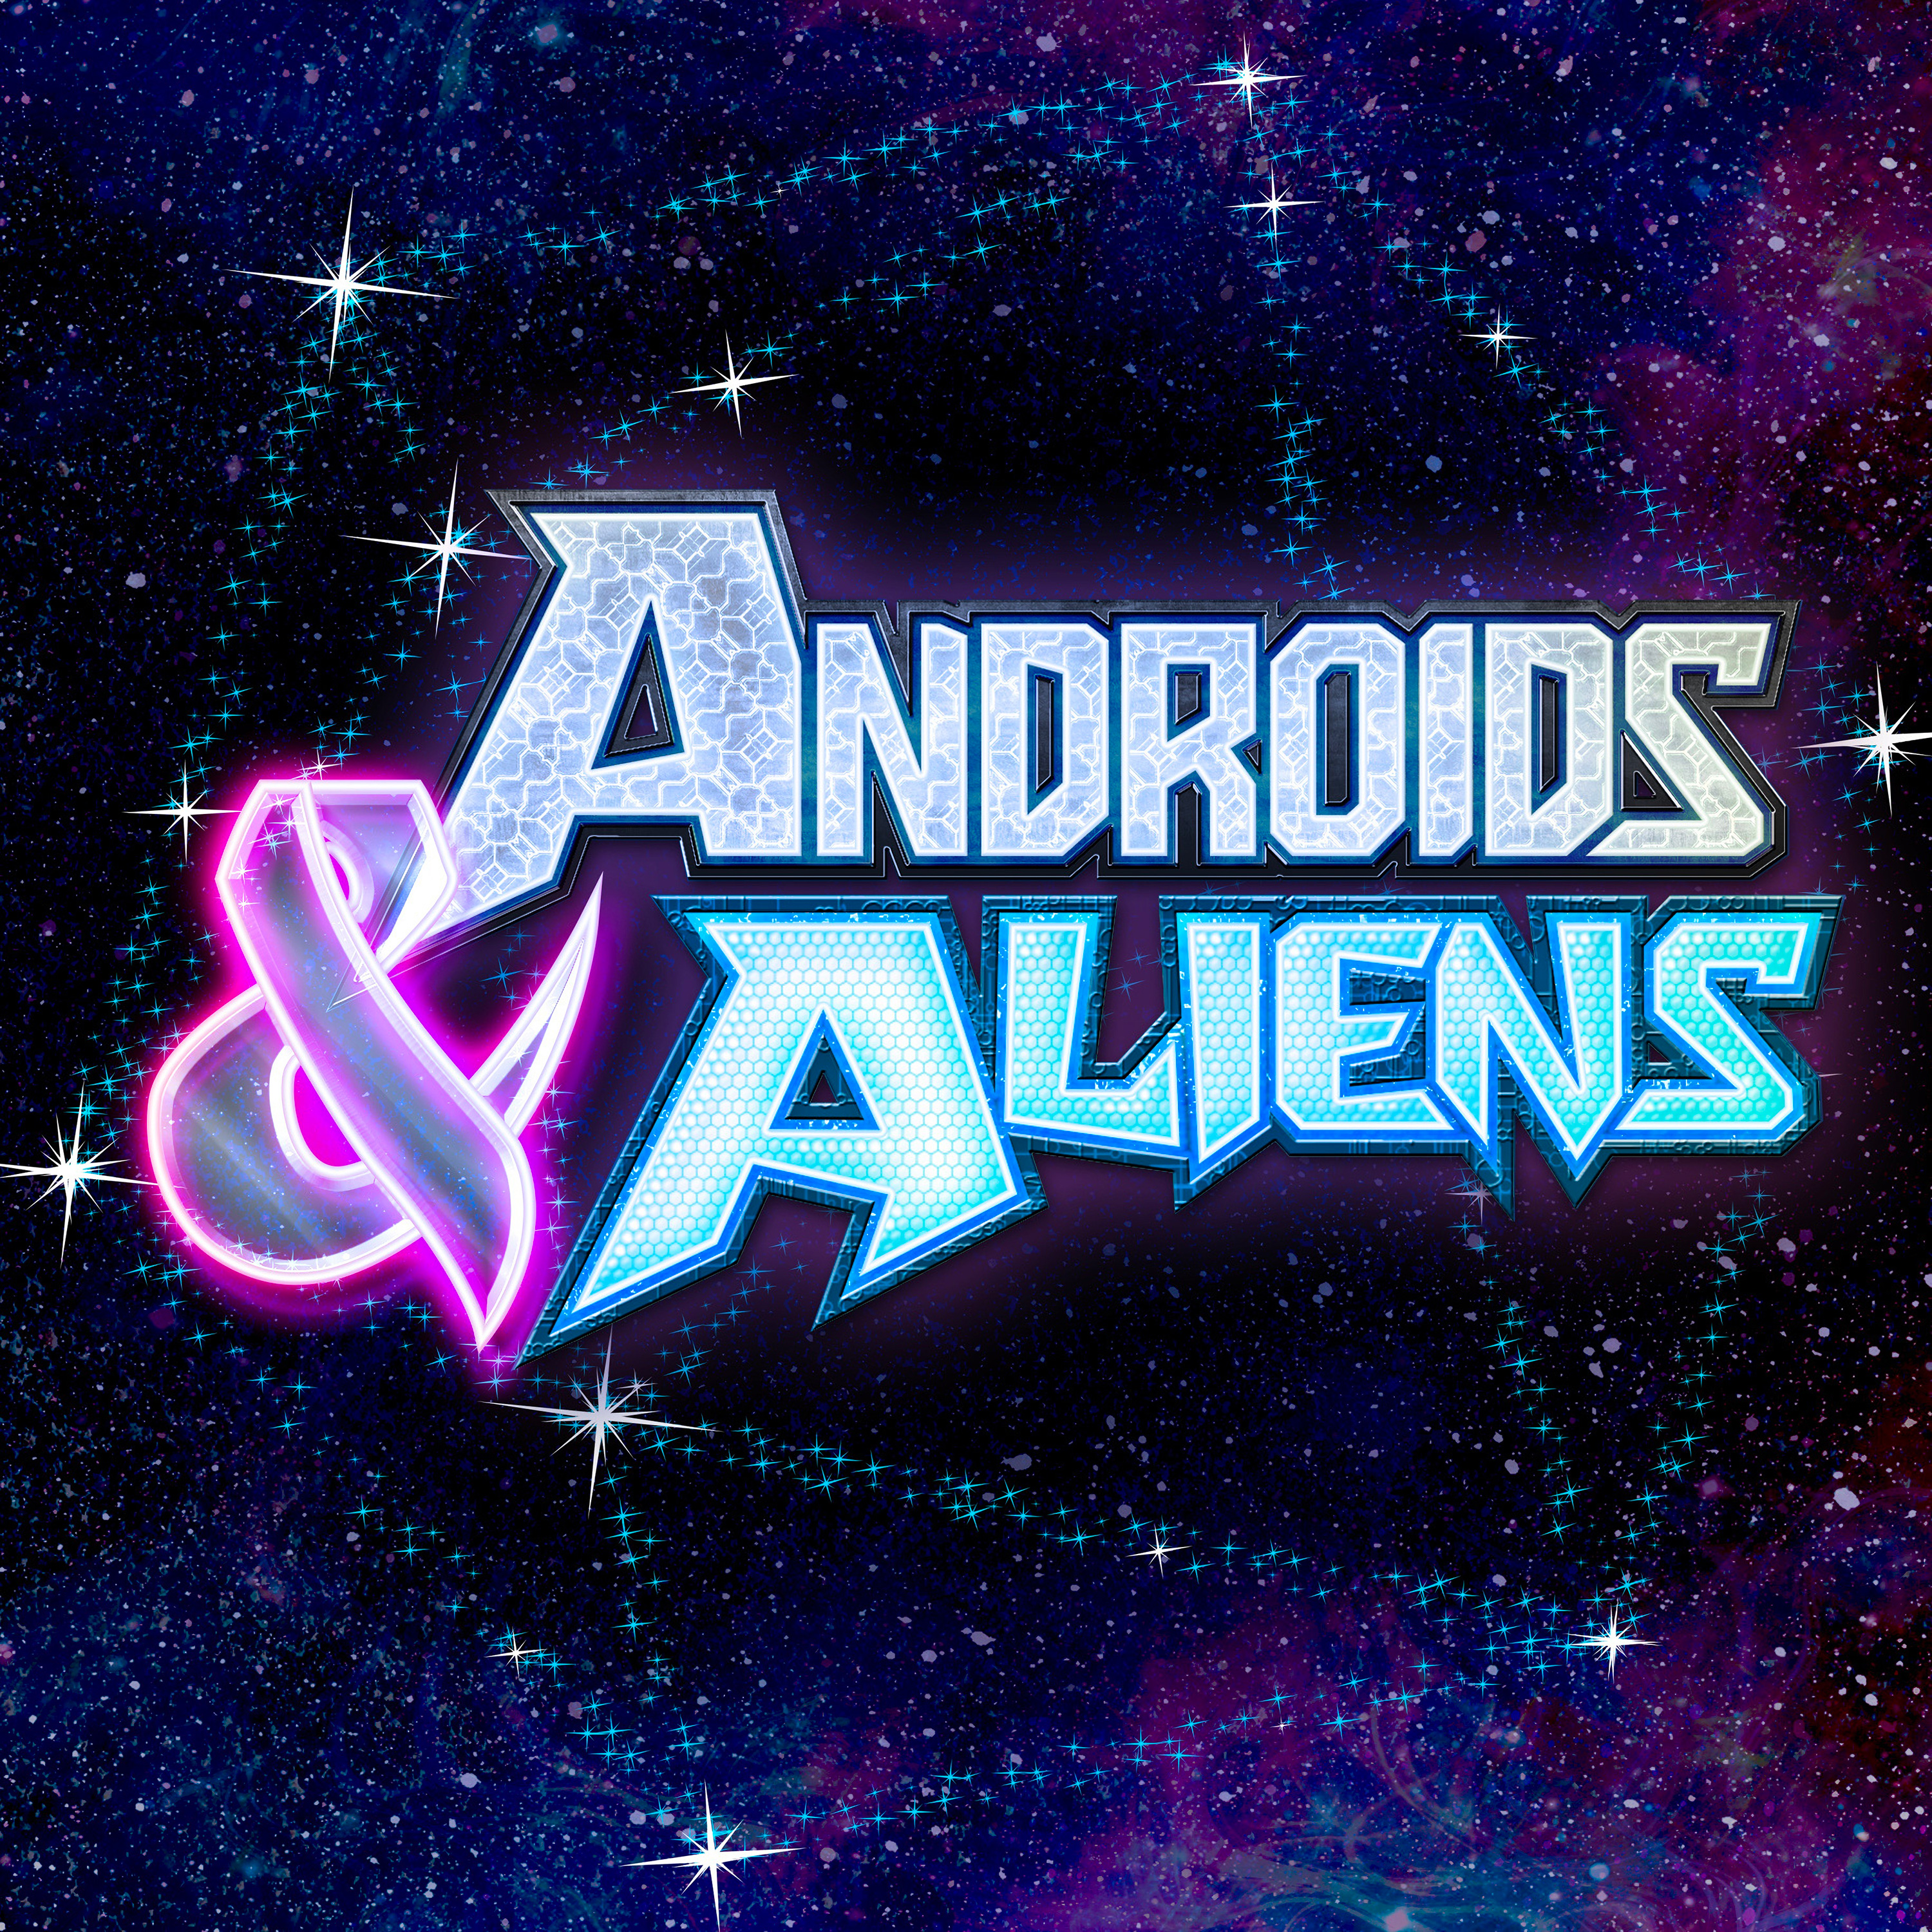 Androids & Aliens Podcast Cover - Square